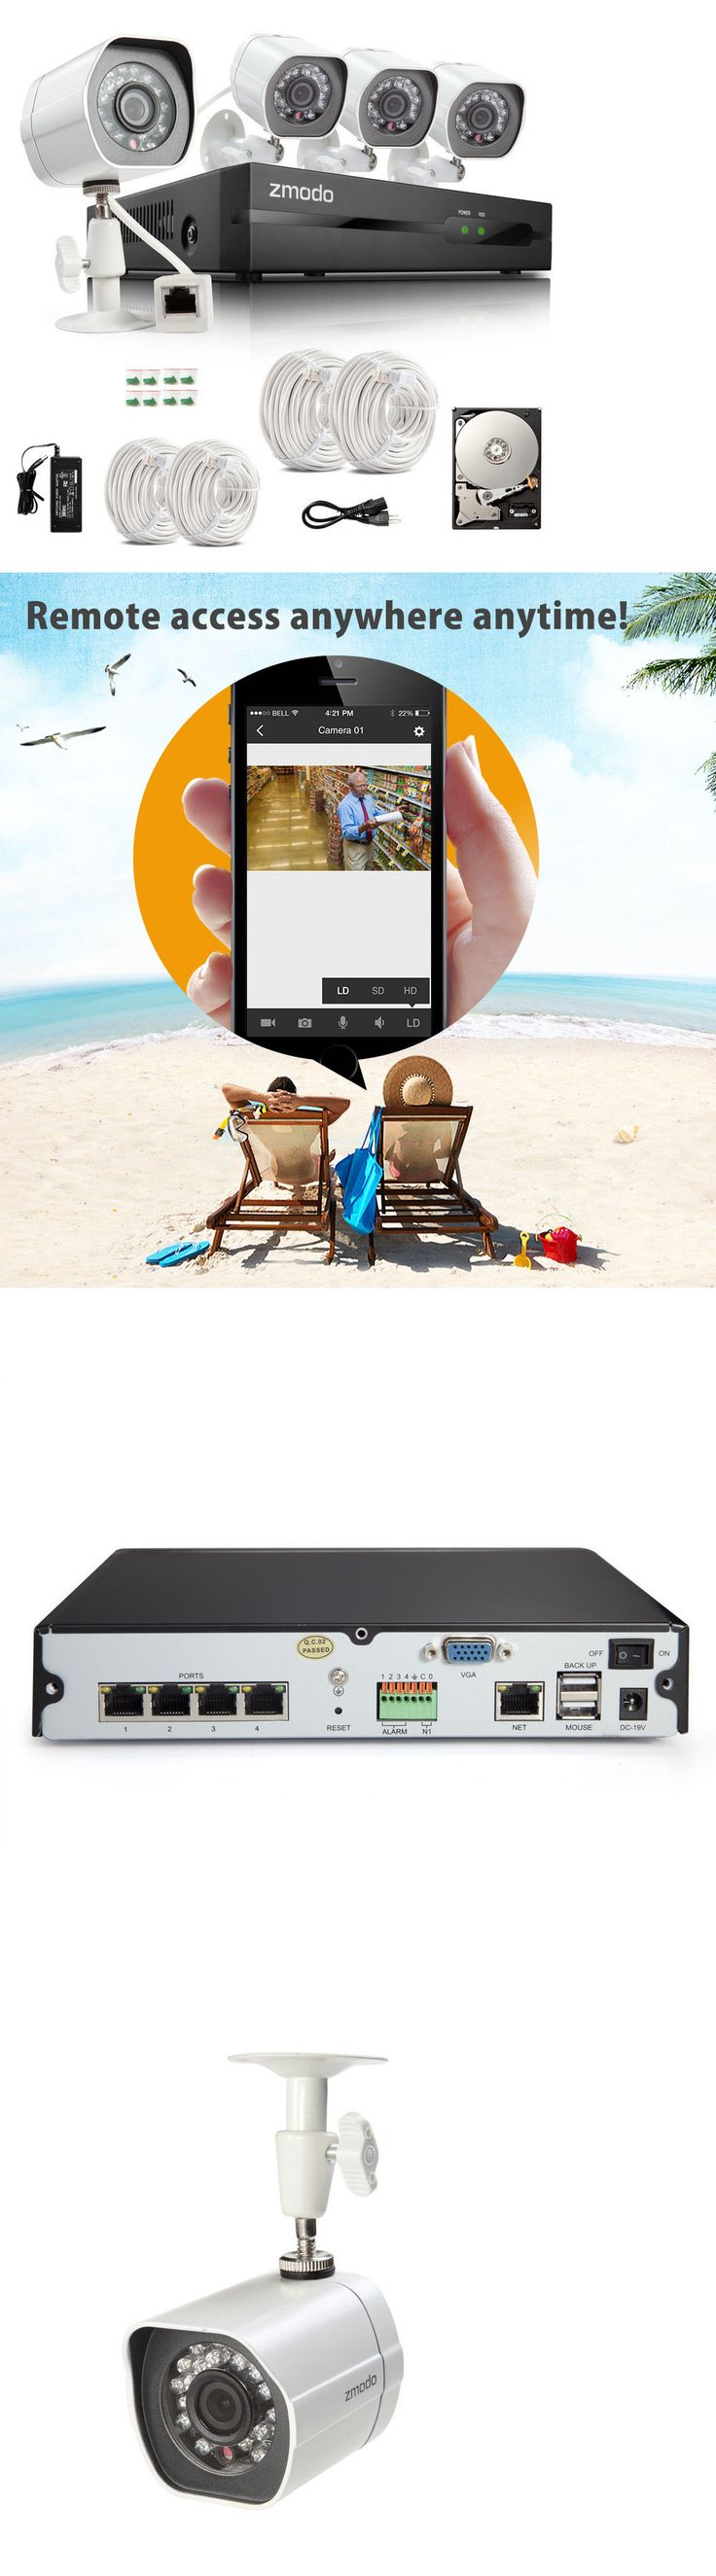 Surveillance Security Systems: Zmodo 1080P Hd Ip Poe Indoor Outdoor Day Night Ir Security Camera Nvr System 1Tb BUY IT NOW ONLY: $199.99